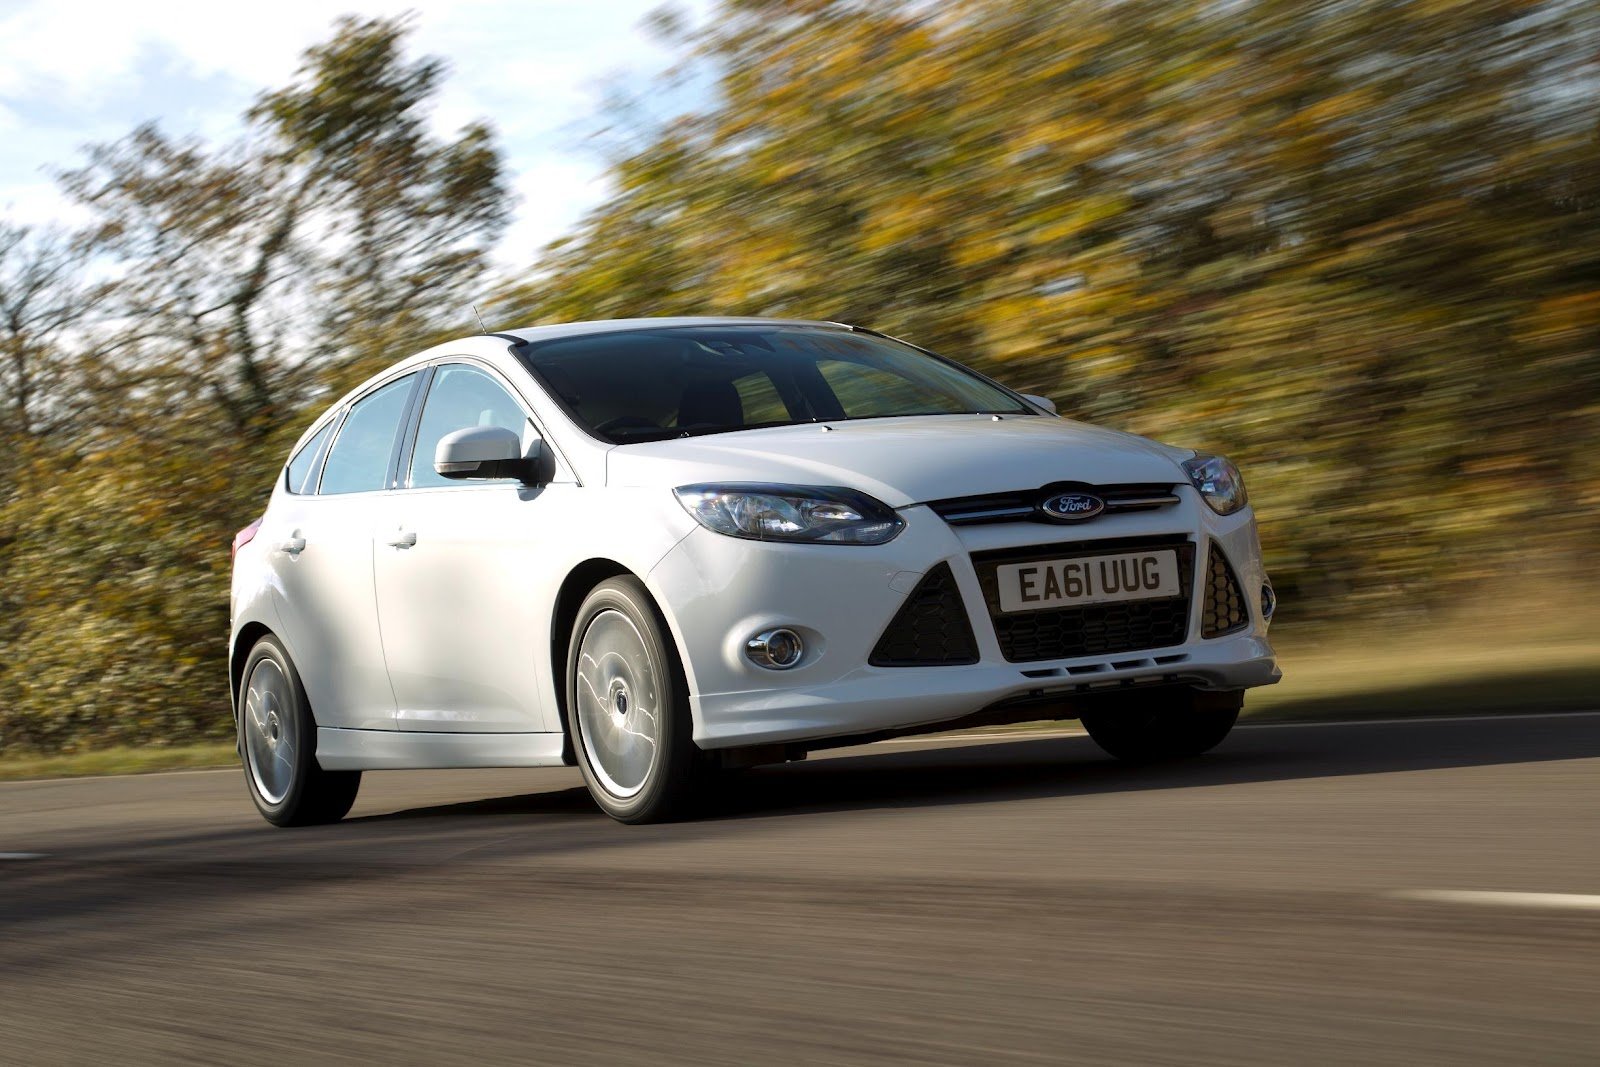 2012 ford focus zetec s front side 2012 ford focus zetec s